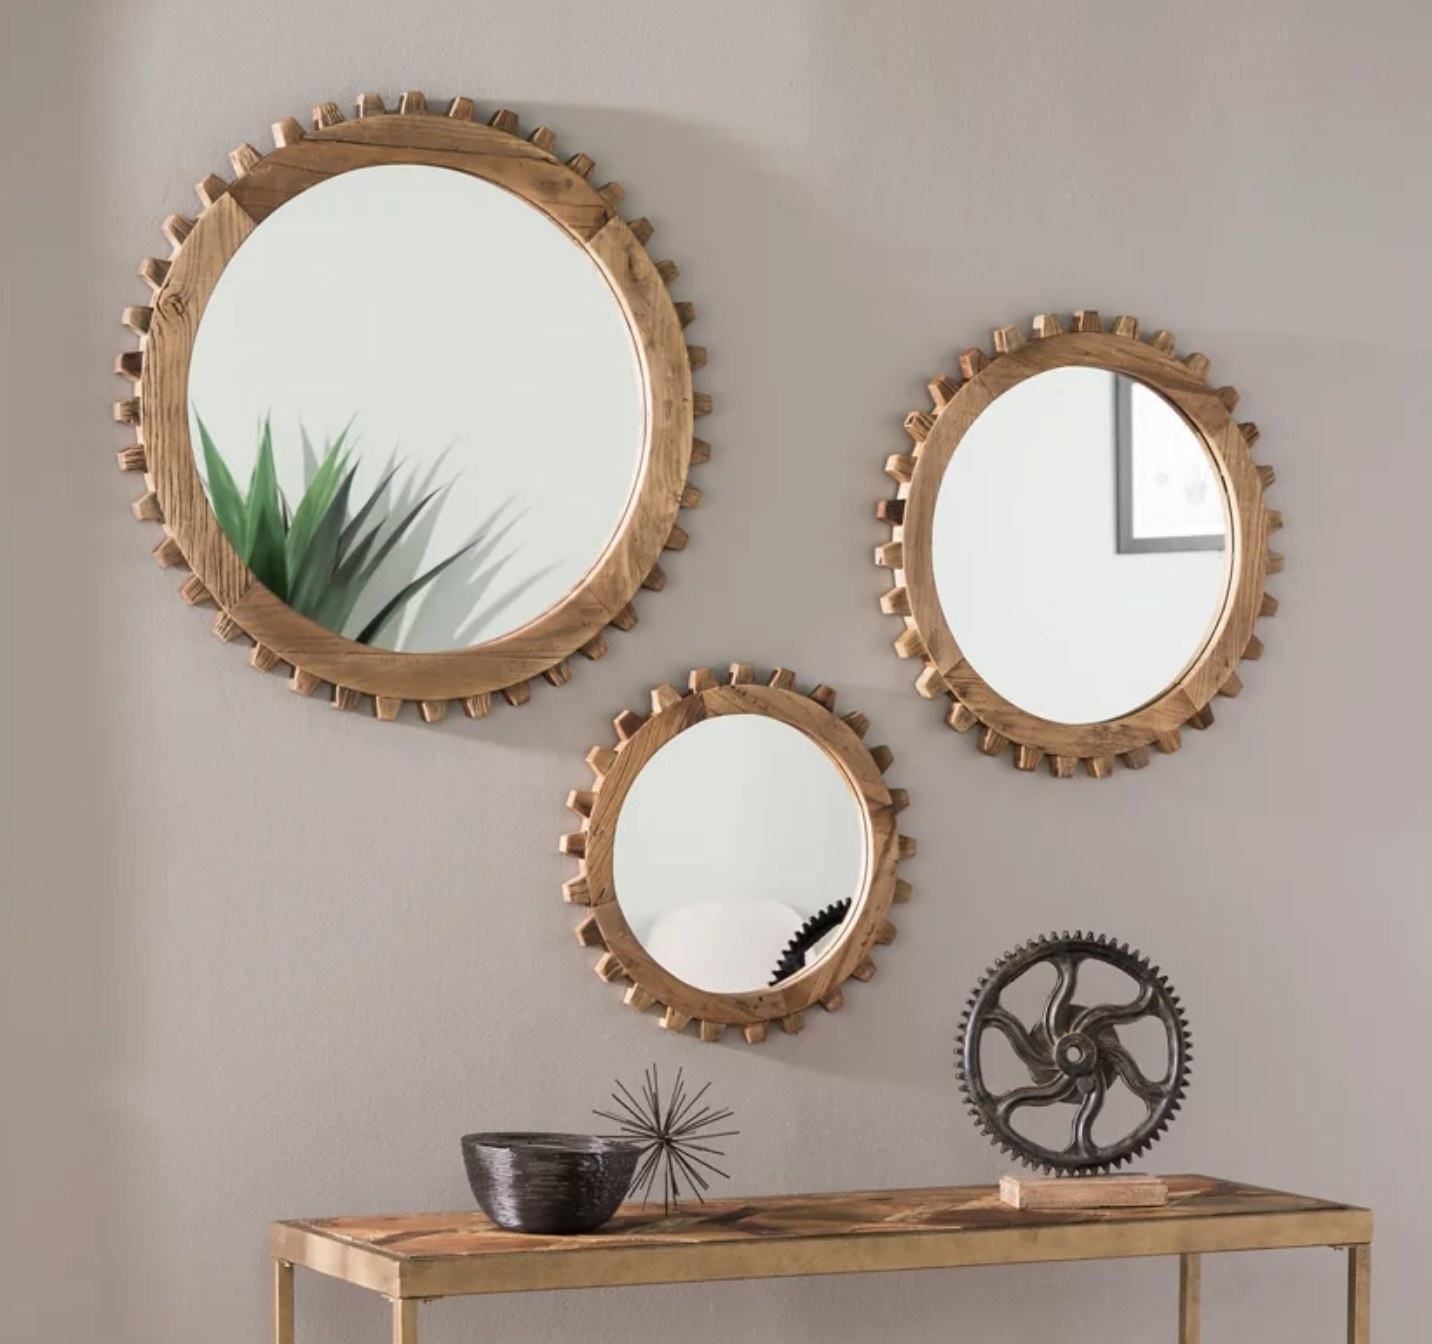 Three mirrors with a wood frame